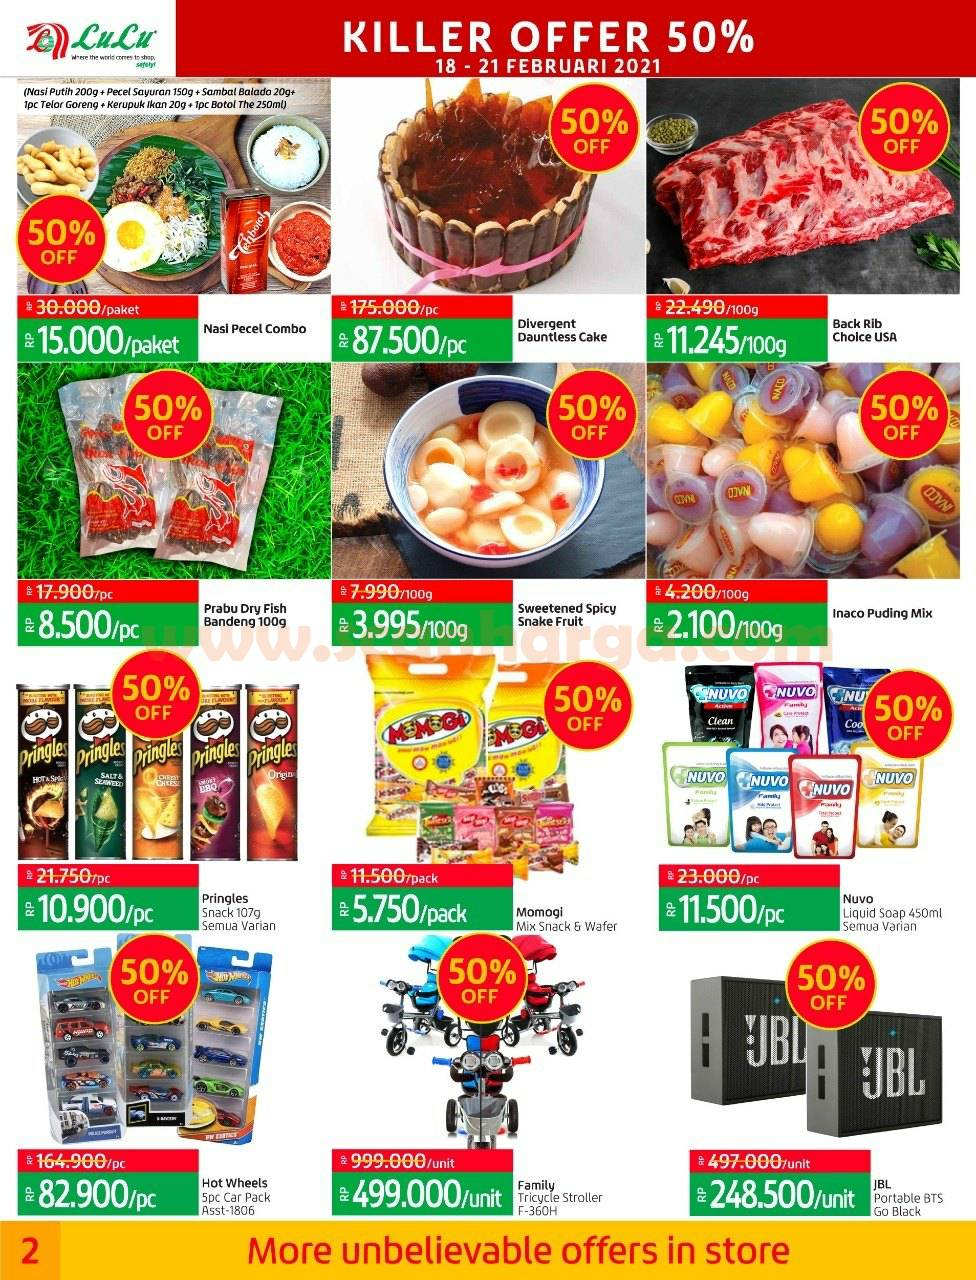 LULU Promo Weekly Price Buster! Katalog Killer Offer 50% Periode 18 - 21 Februari 2021